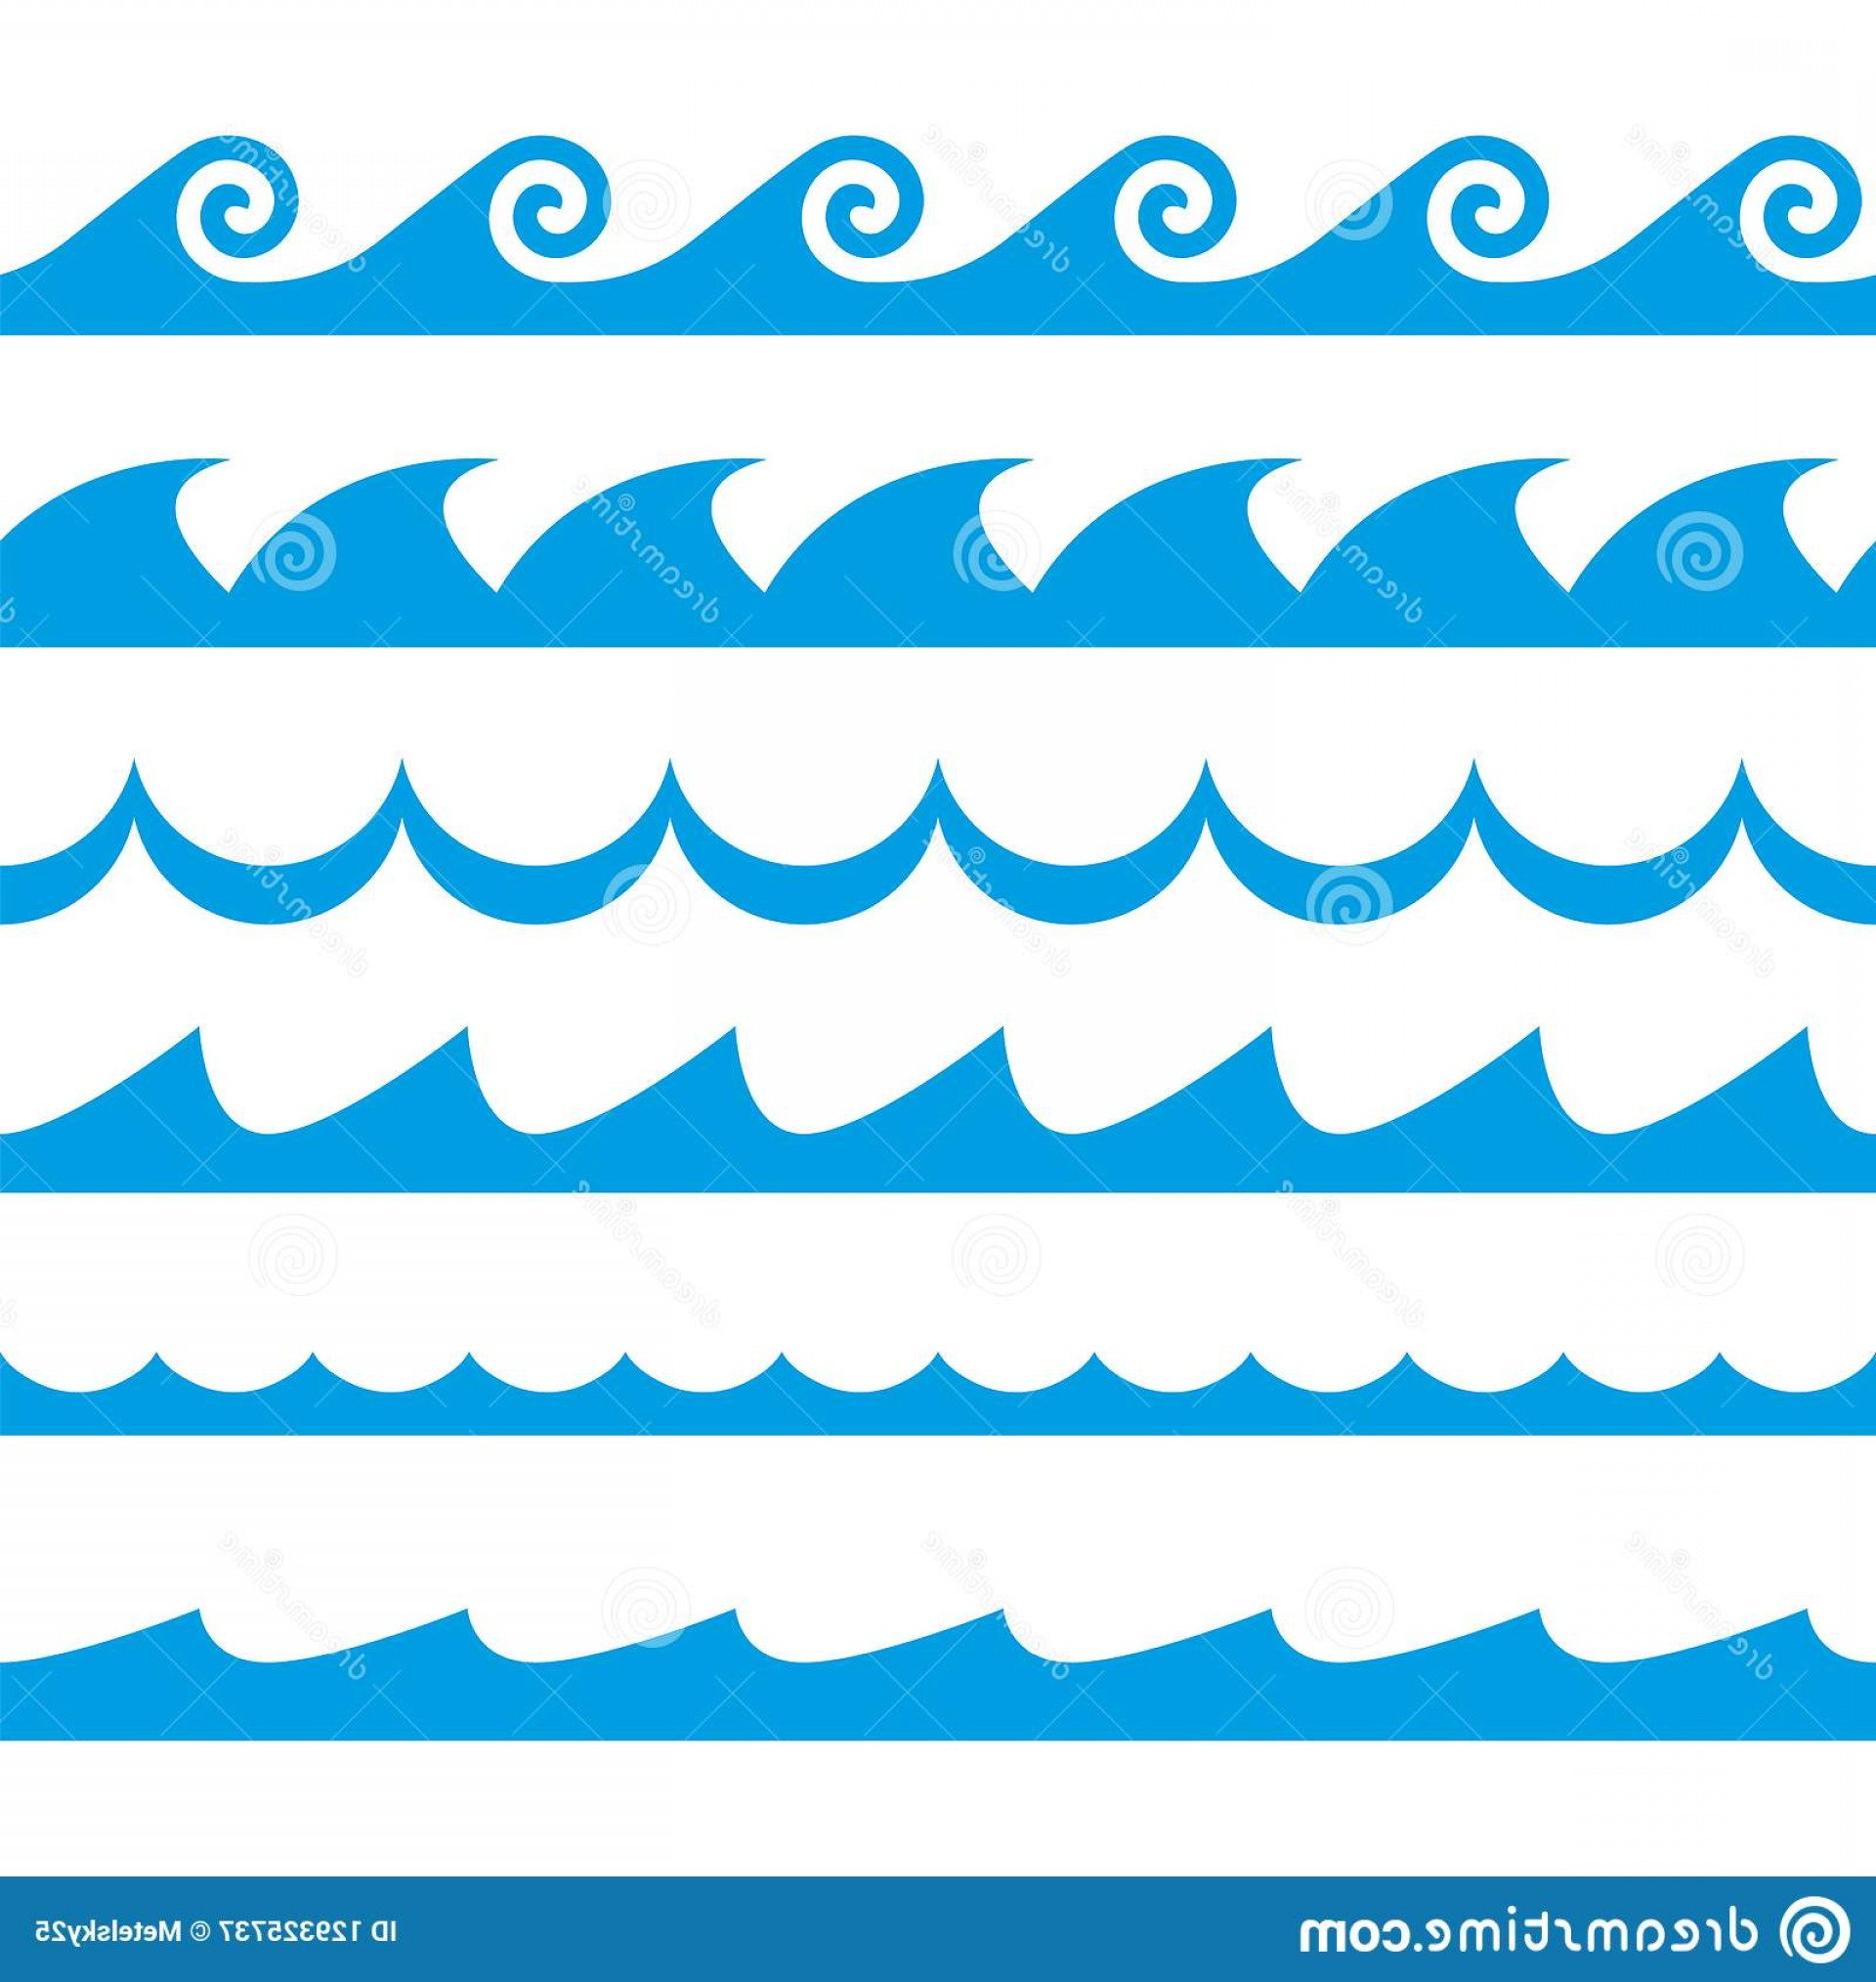 Vave Vector: Wave Set Waves Seamless Pattern Decoration Template Sea Ocean Vector Illustration Image